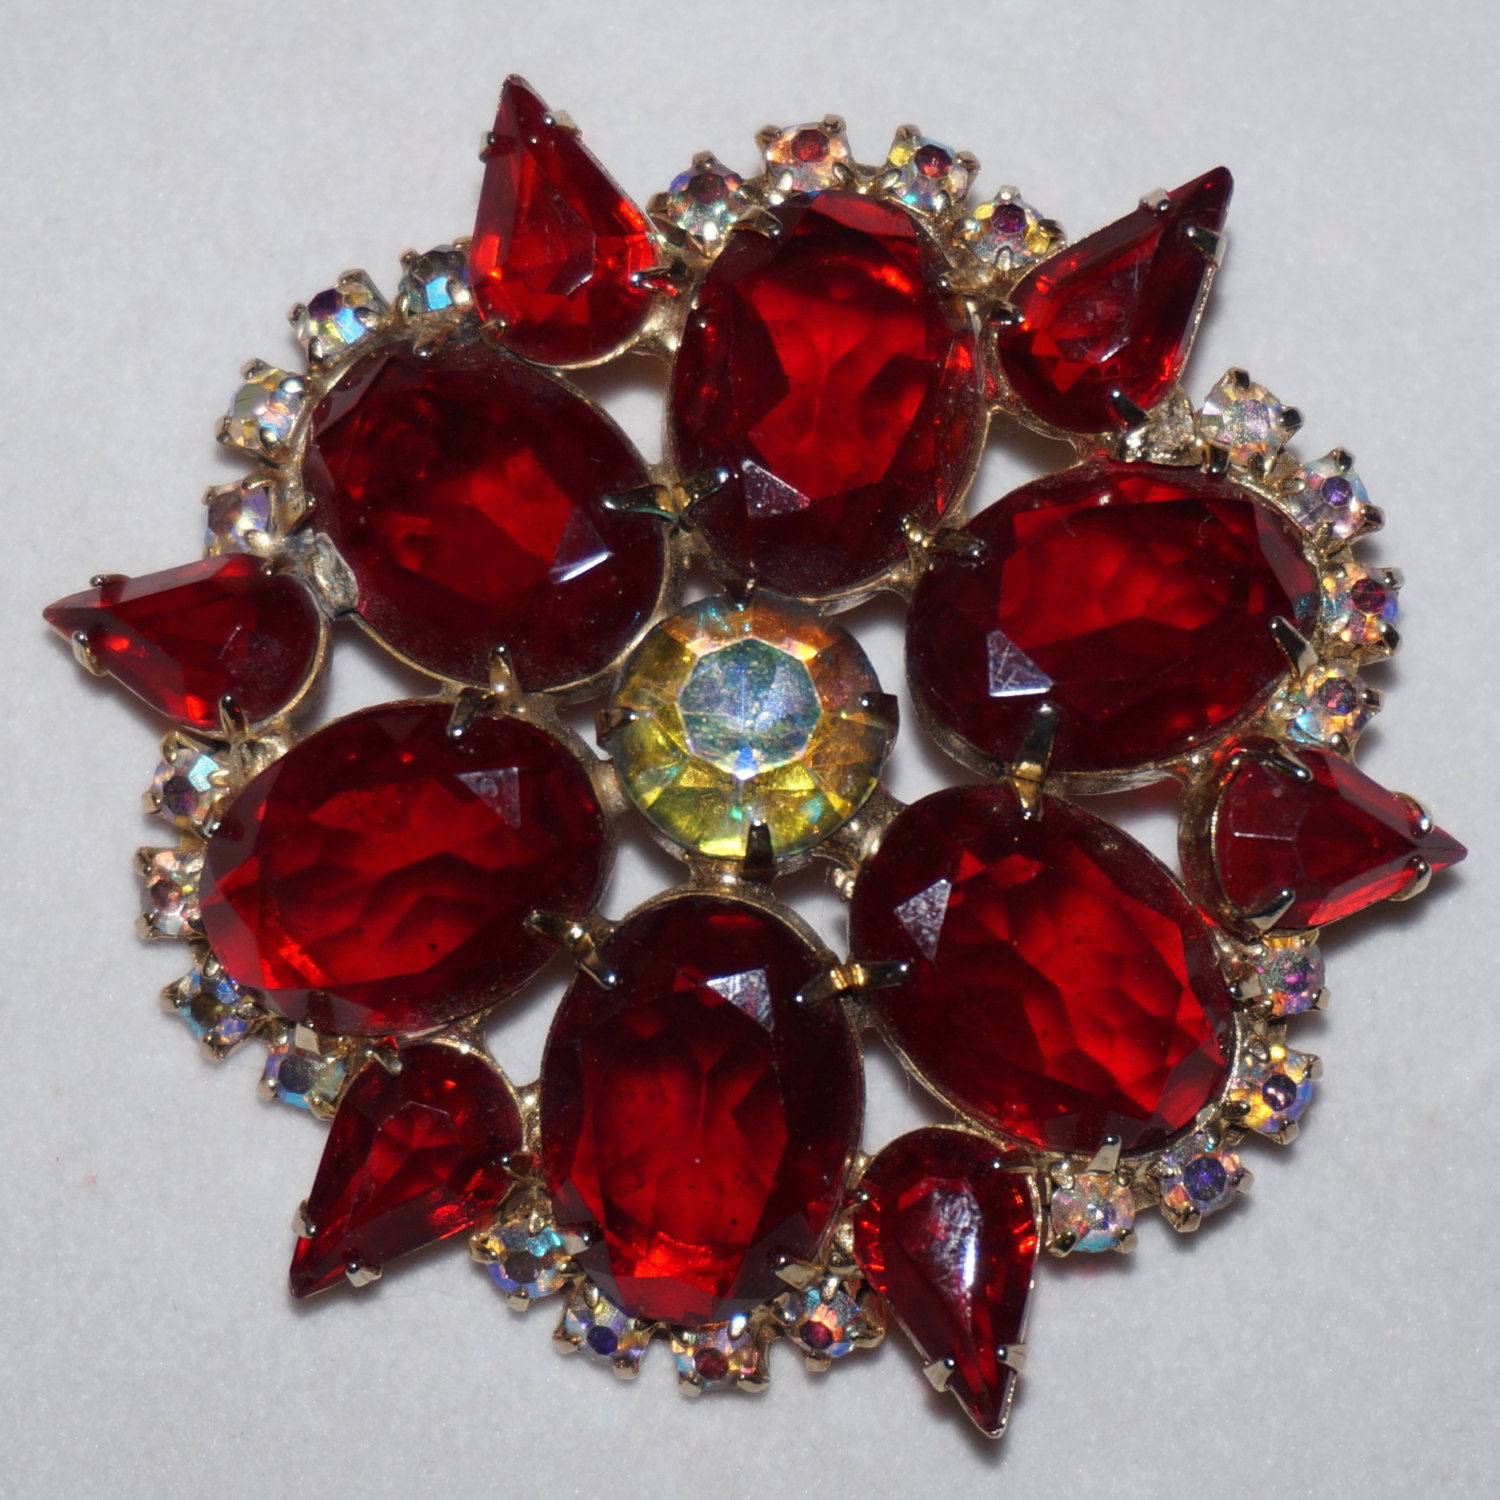 Primary image for High End Vintage Red Rhinestone Brooch Pin Prong Set Foiled Unfoiled Stones